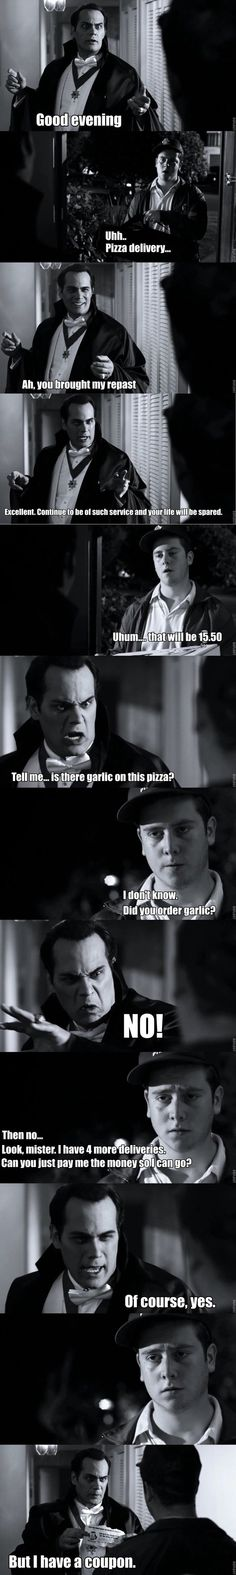 Dracula ordering a pizza   One of my all-time favorite episodes of Supernatural.